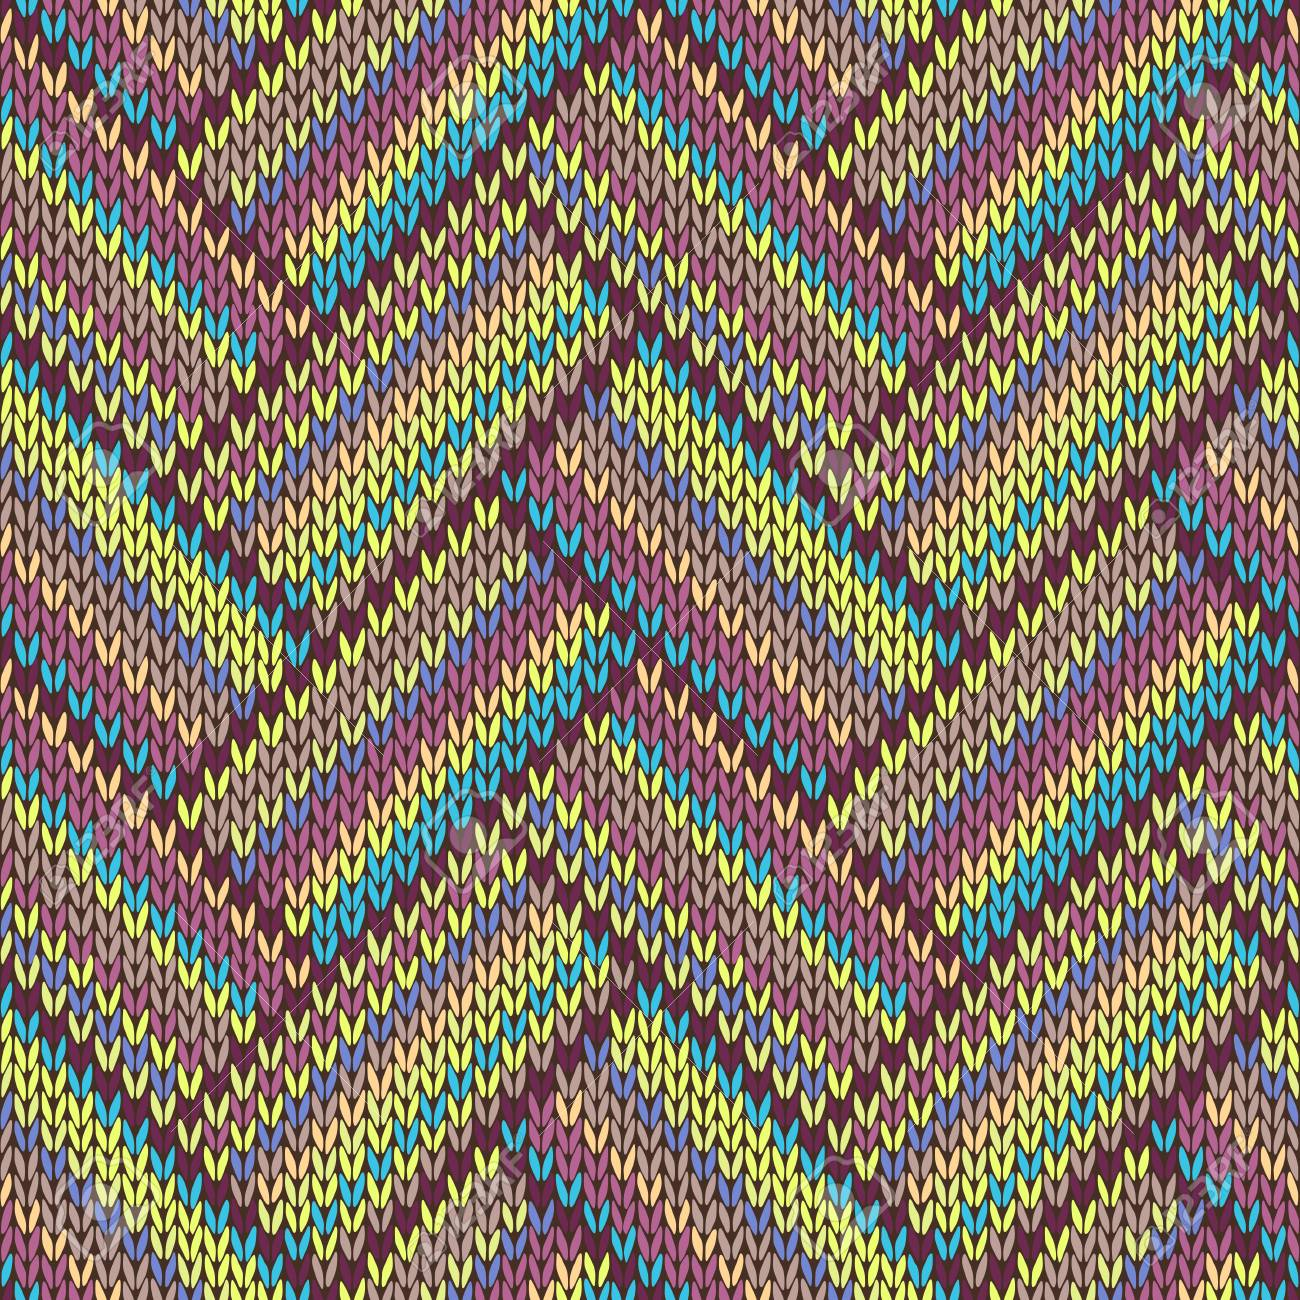 seamless knitted pattern multicolored repeating tribal template